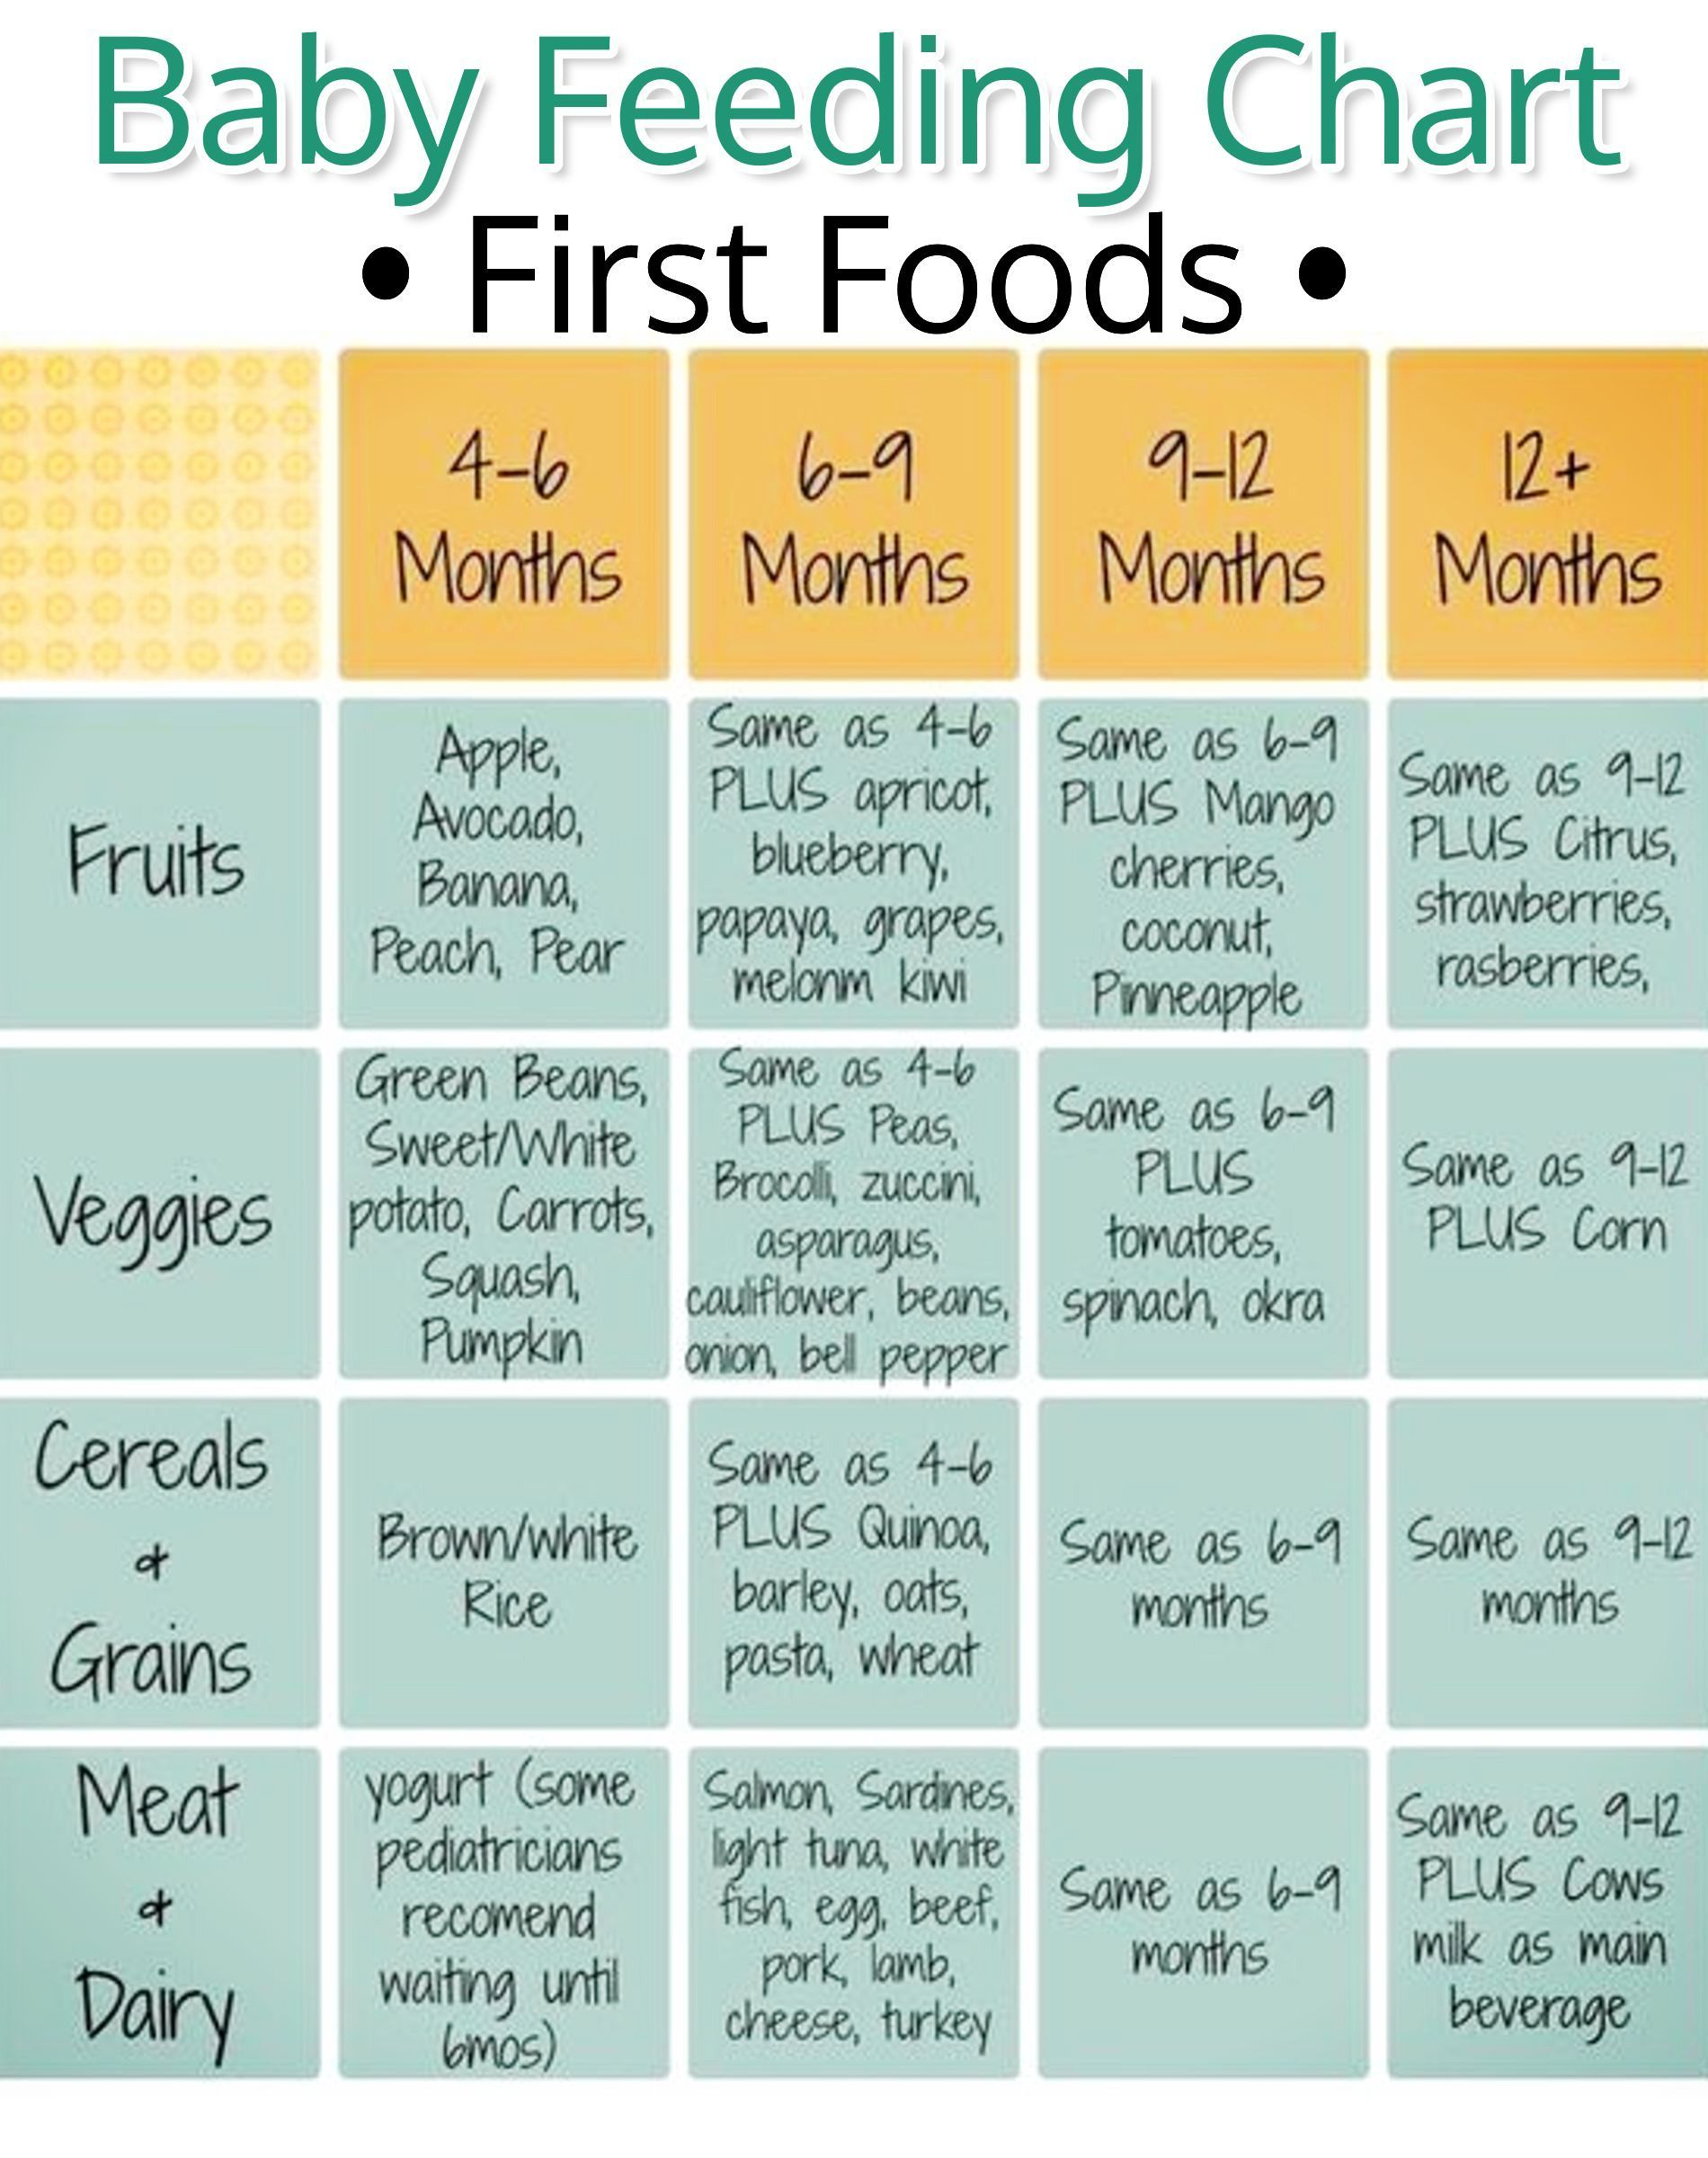 baby feeding chart for first baby foods  helpful chart for baby u0026 39 s first solids   babycaretips